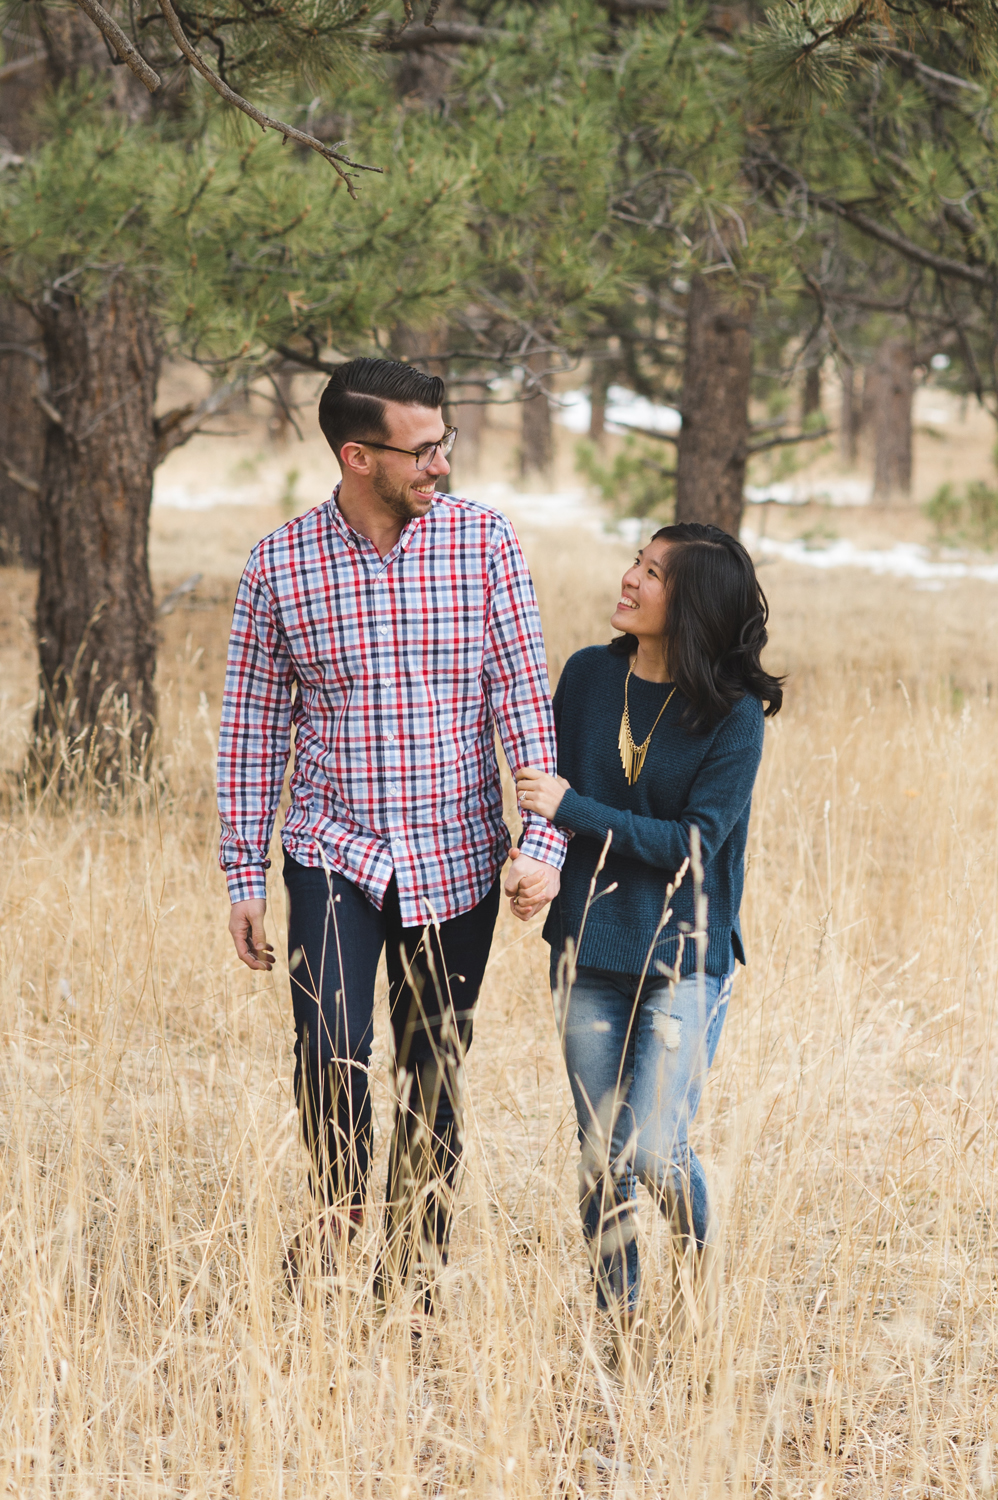 TiffanyandMark_Engaged_0160_squarespace.jpg